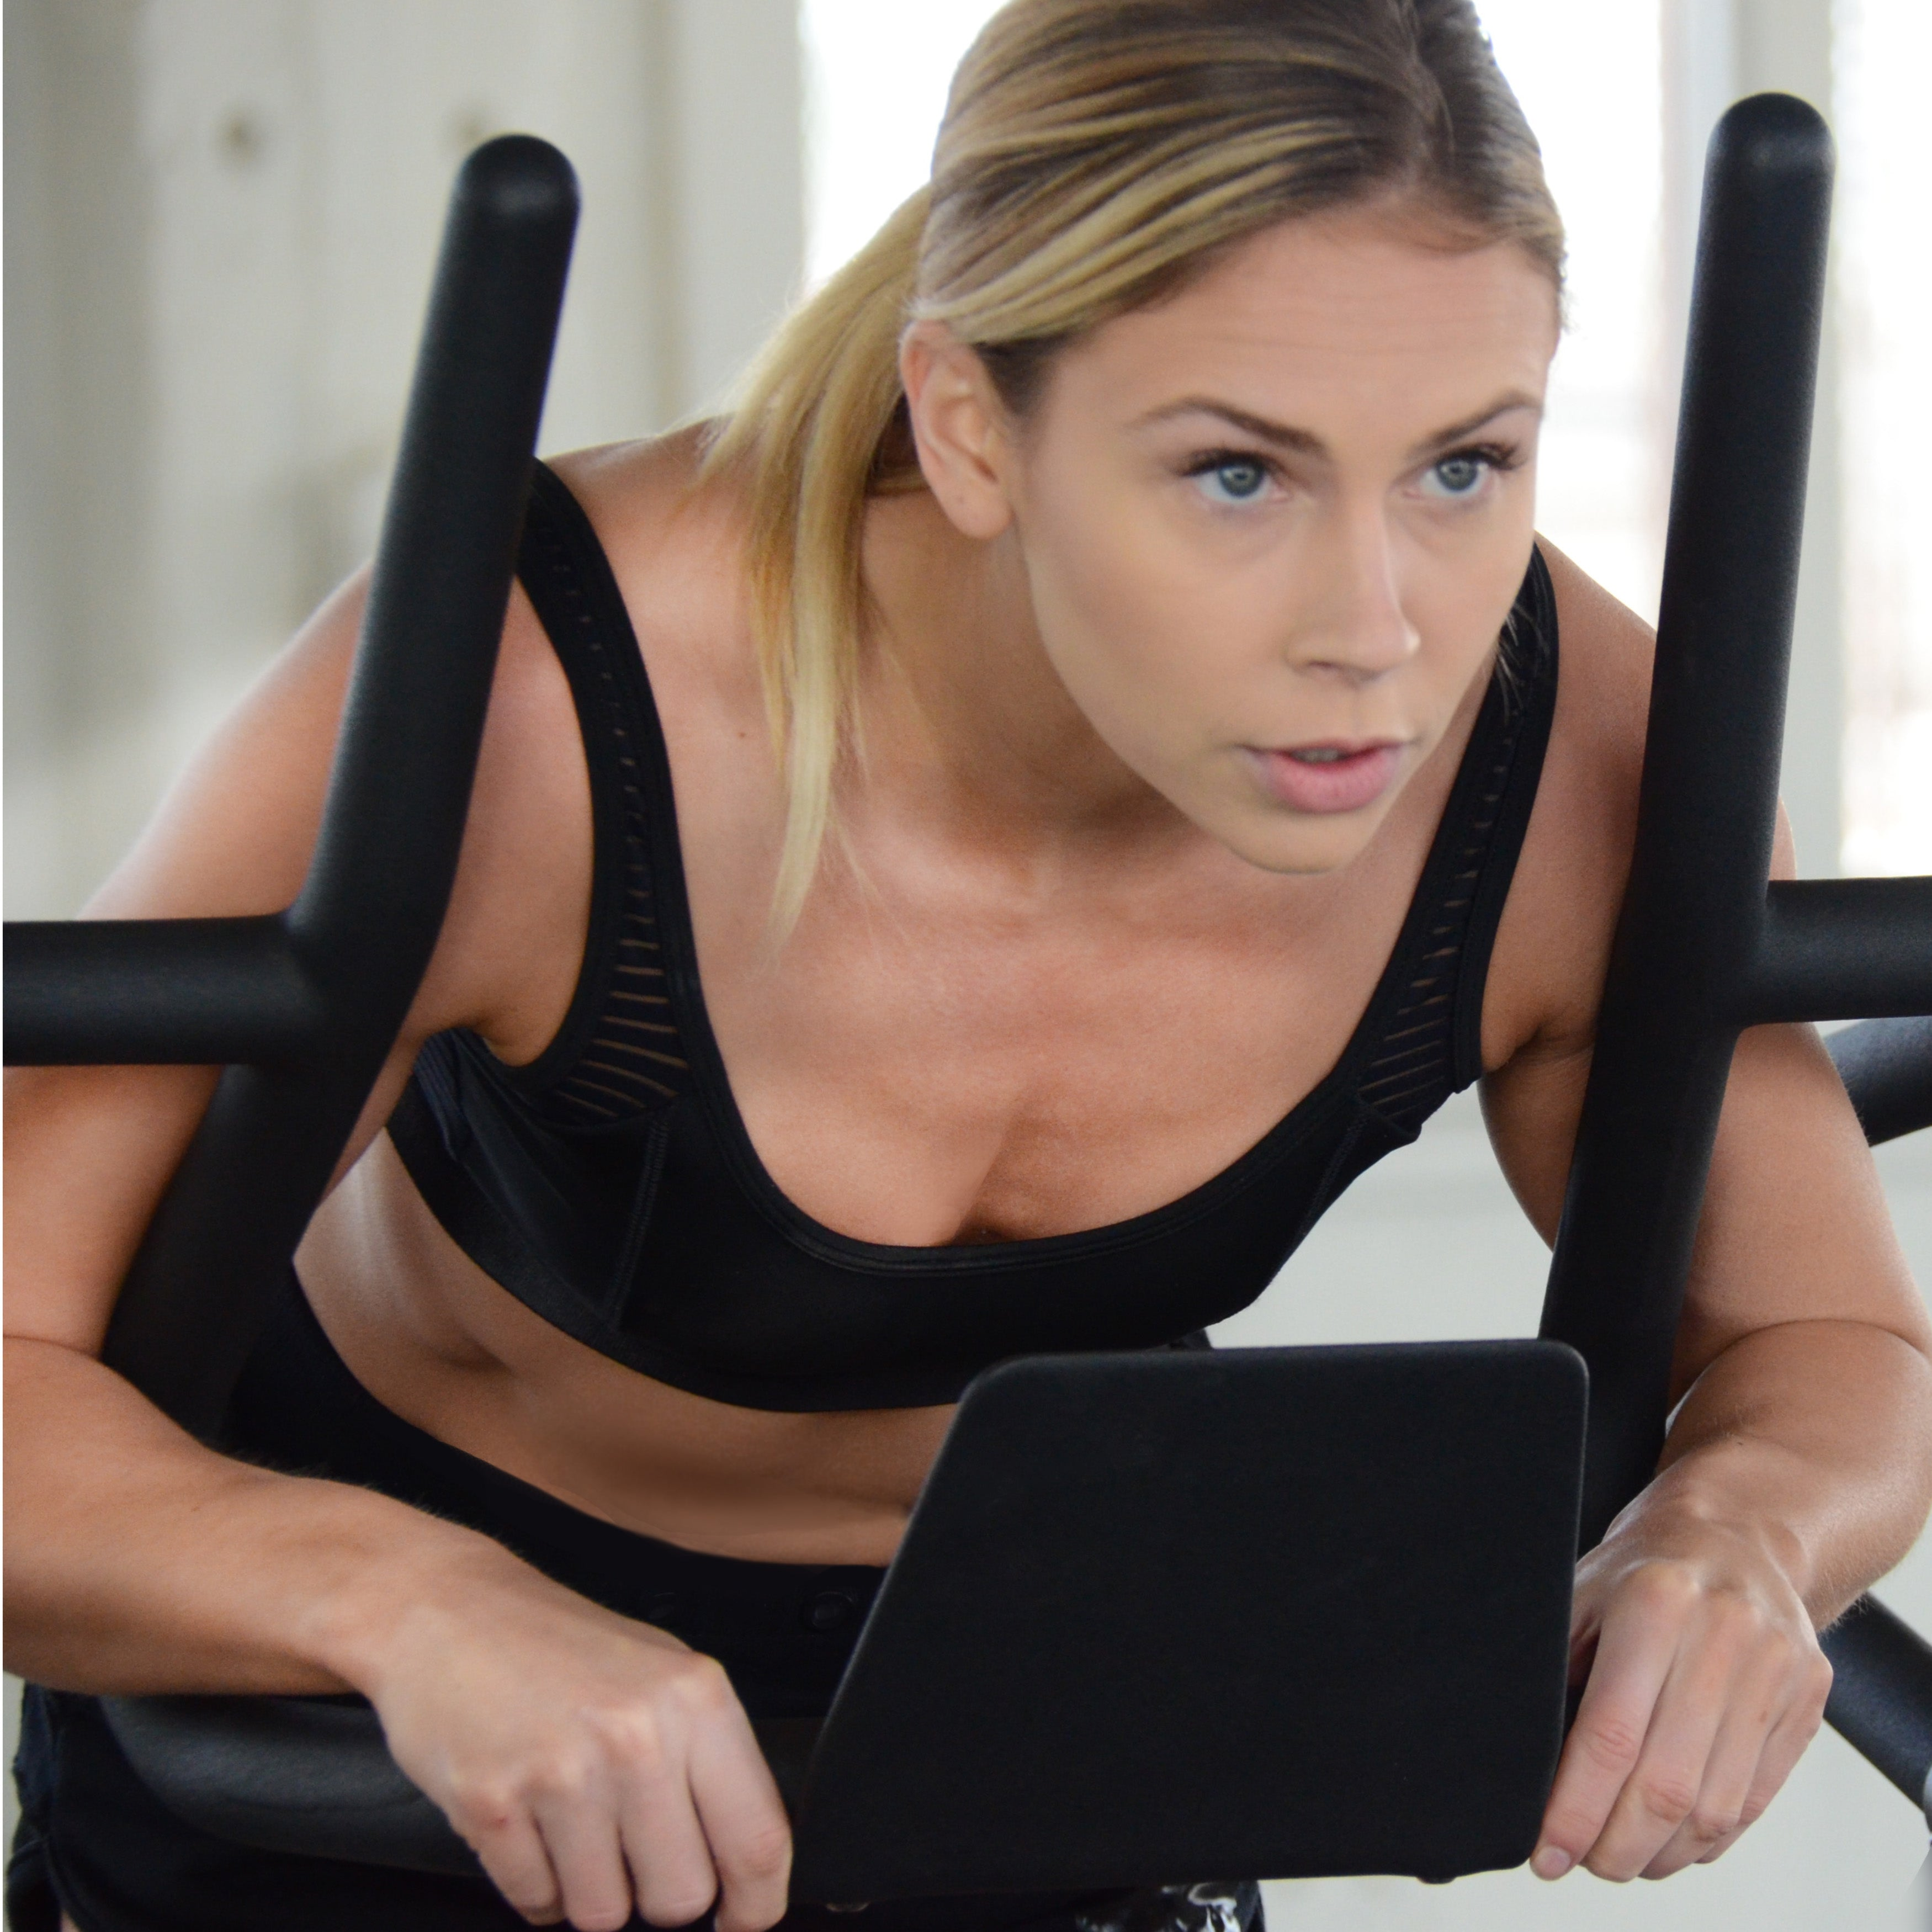 woman upper body leaning on treadmill